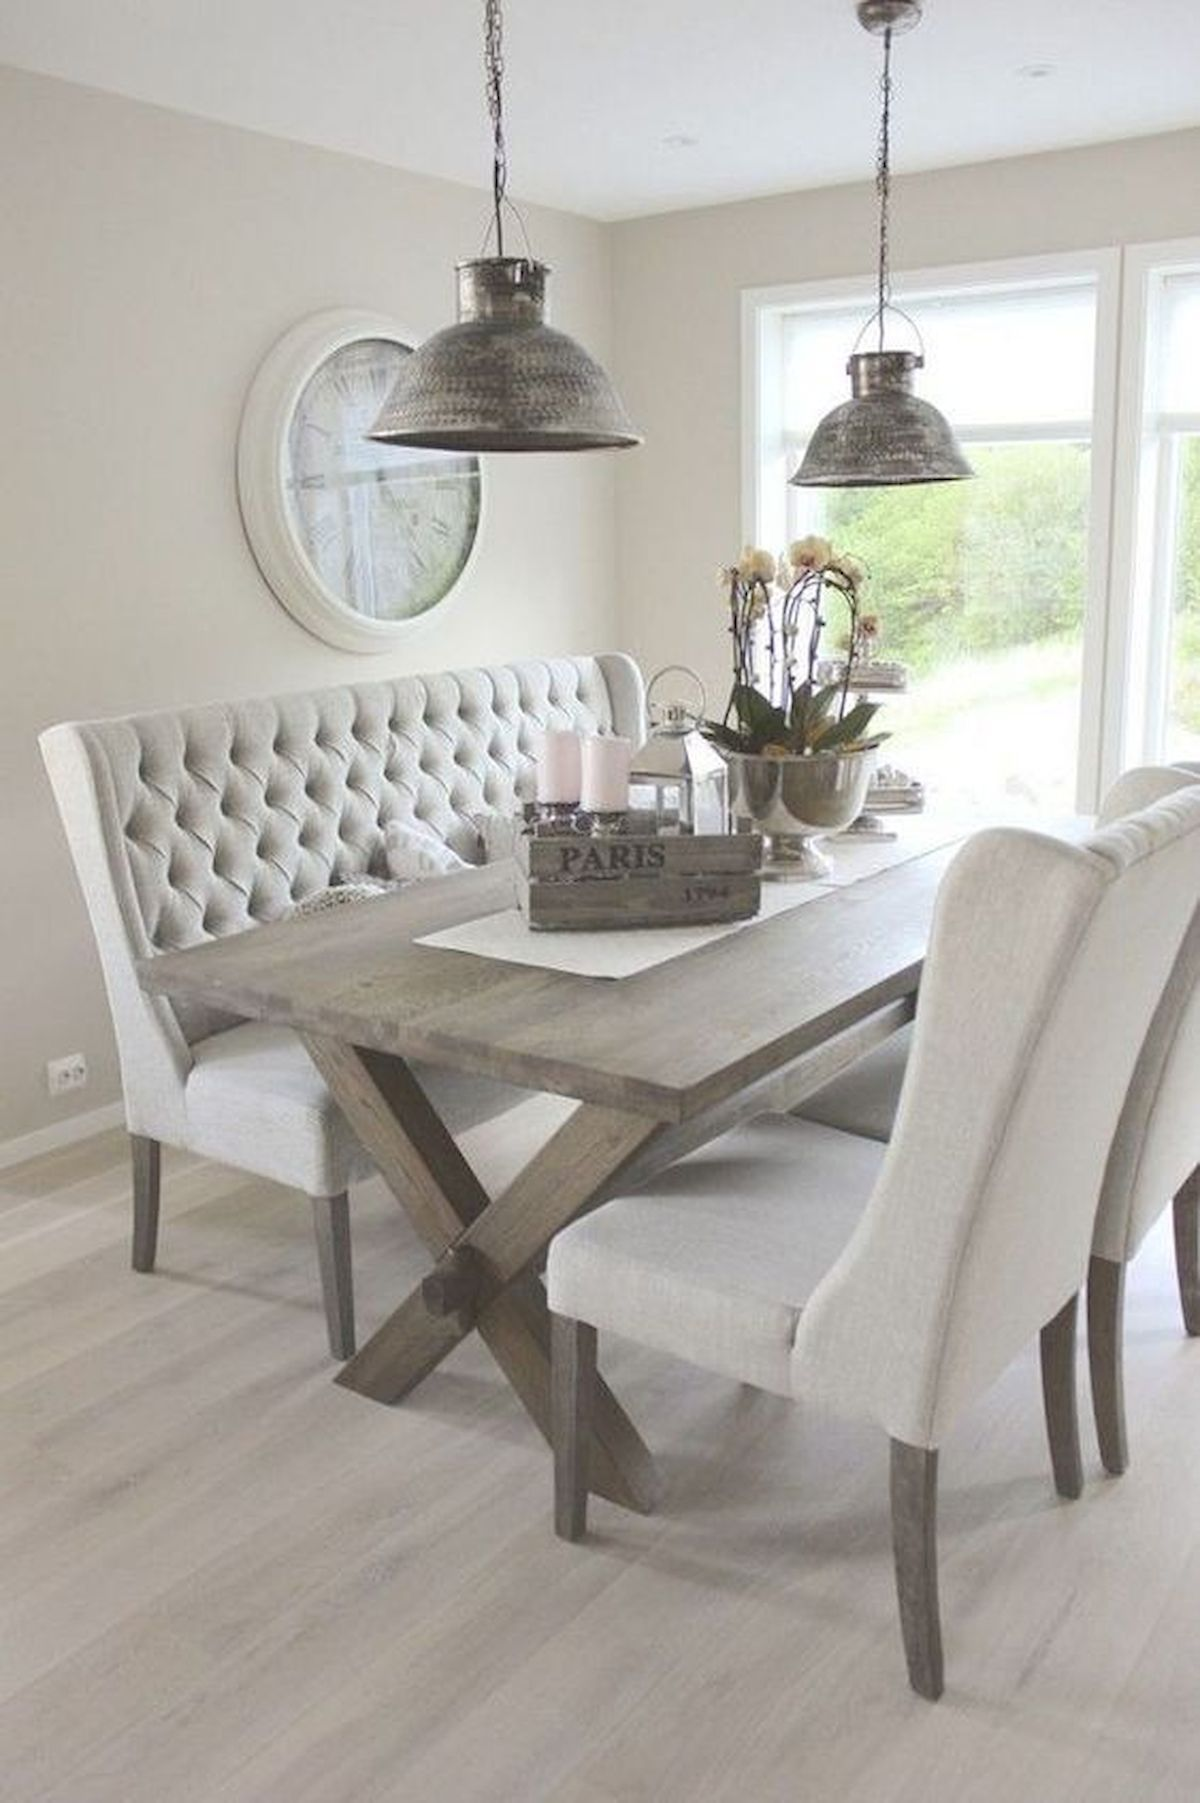 55 stunning diy projects furniture tables dining rooms